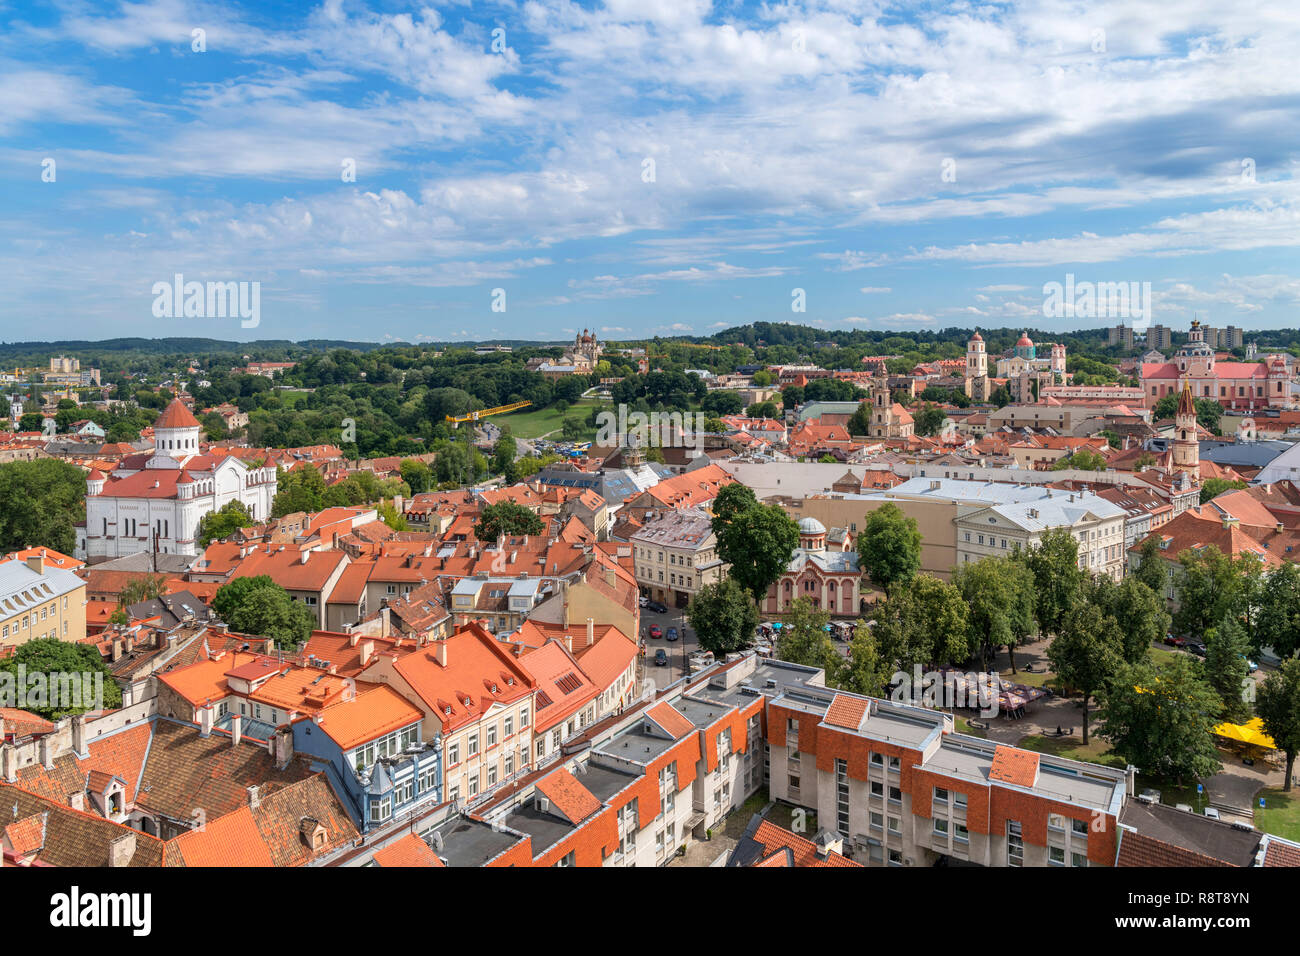 View over the Old Town from St Johns Church bell tower, Vilnius University, Vilnius, Lithuania - Stock Image